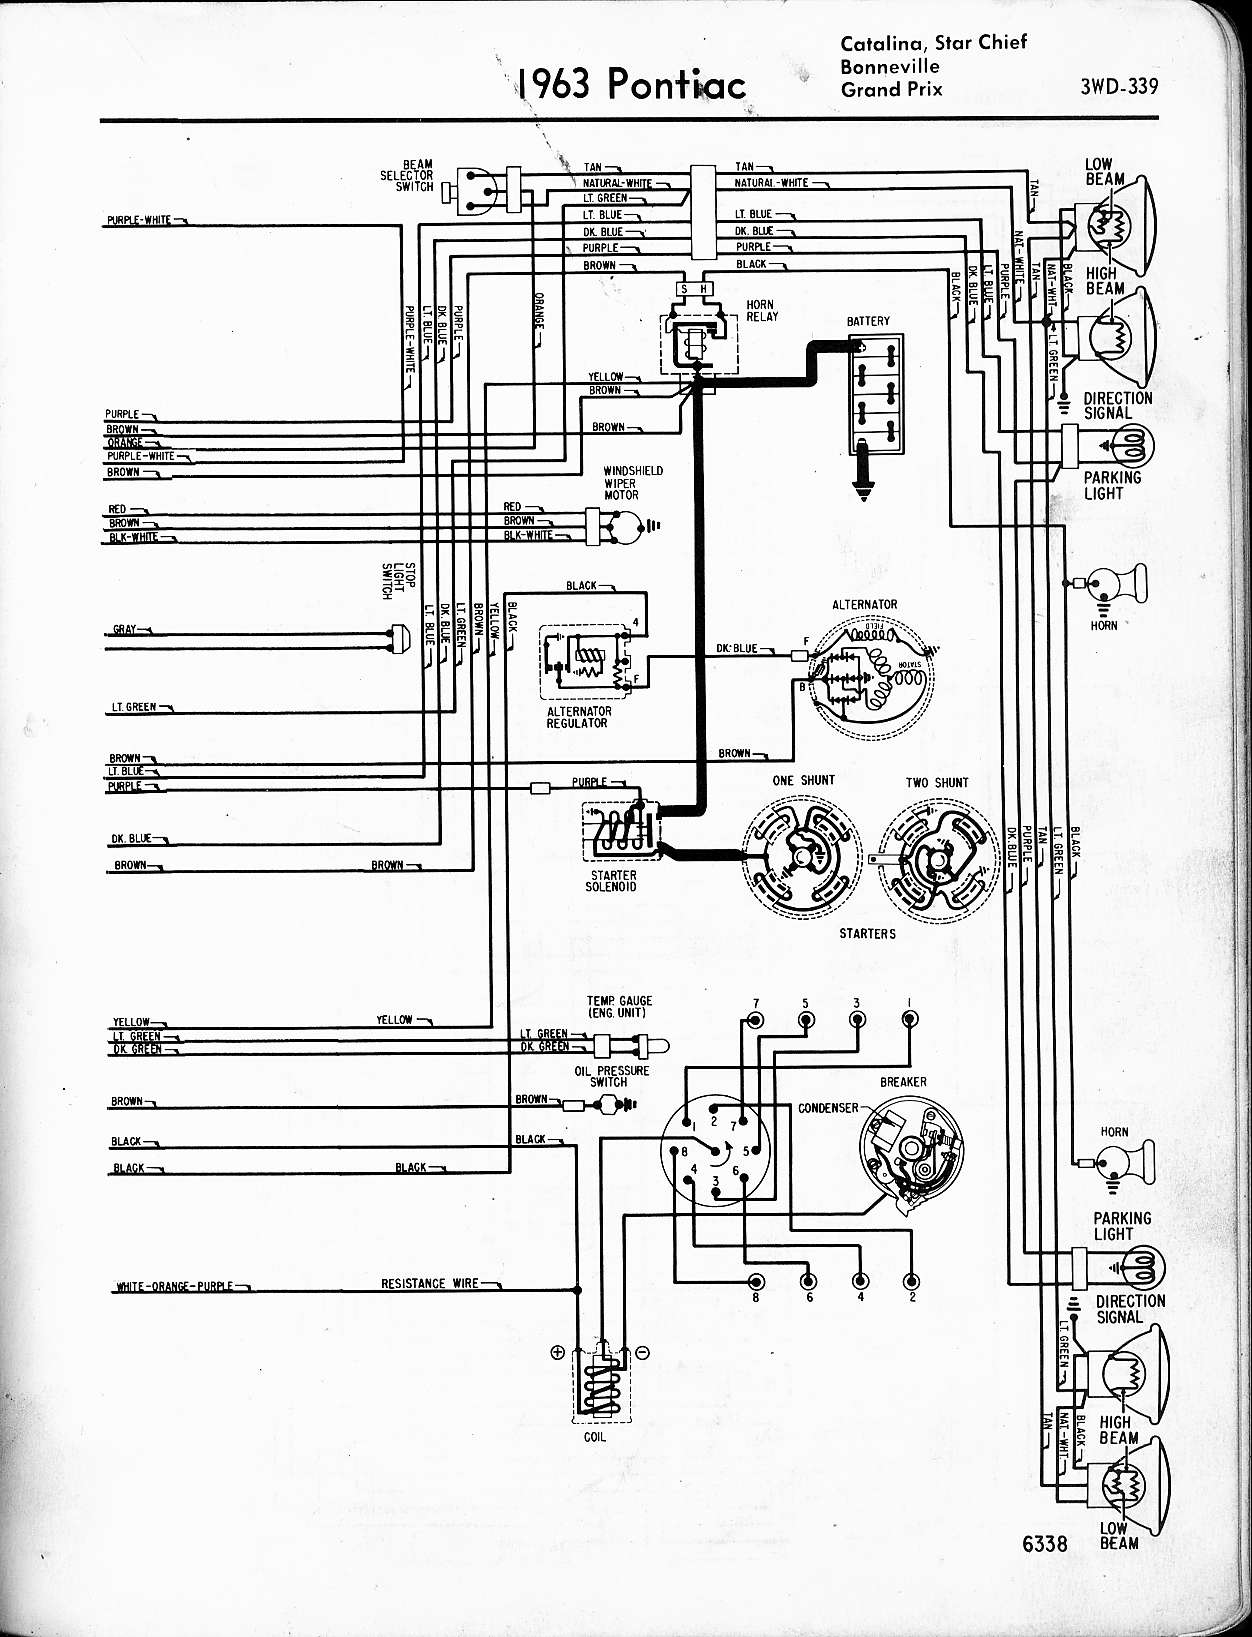 wallace racing wiring diagrams 1997 Pontiac Grand Prix Engine Diagram 1963 catalina, star chief, bonneville, grand prix, right page Pontiac Grand Prix Engine Diagram